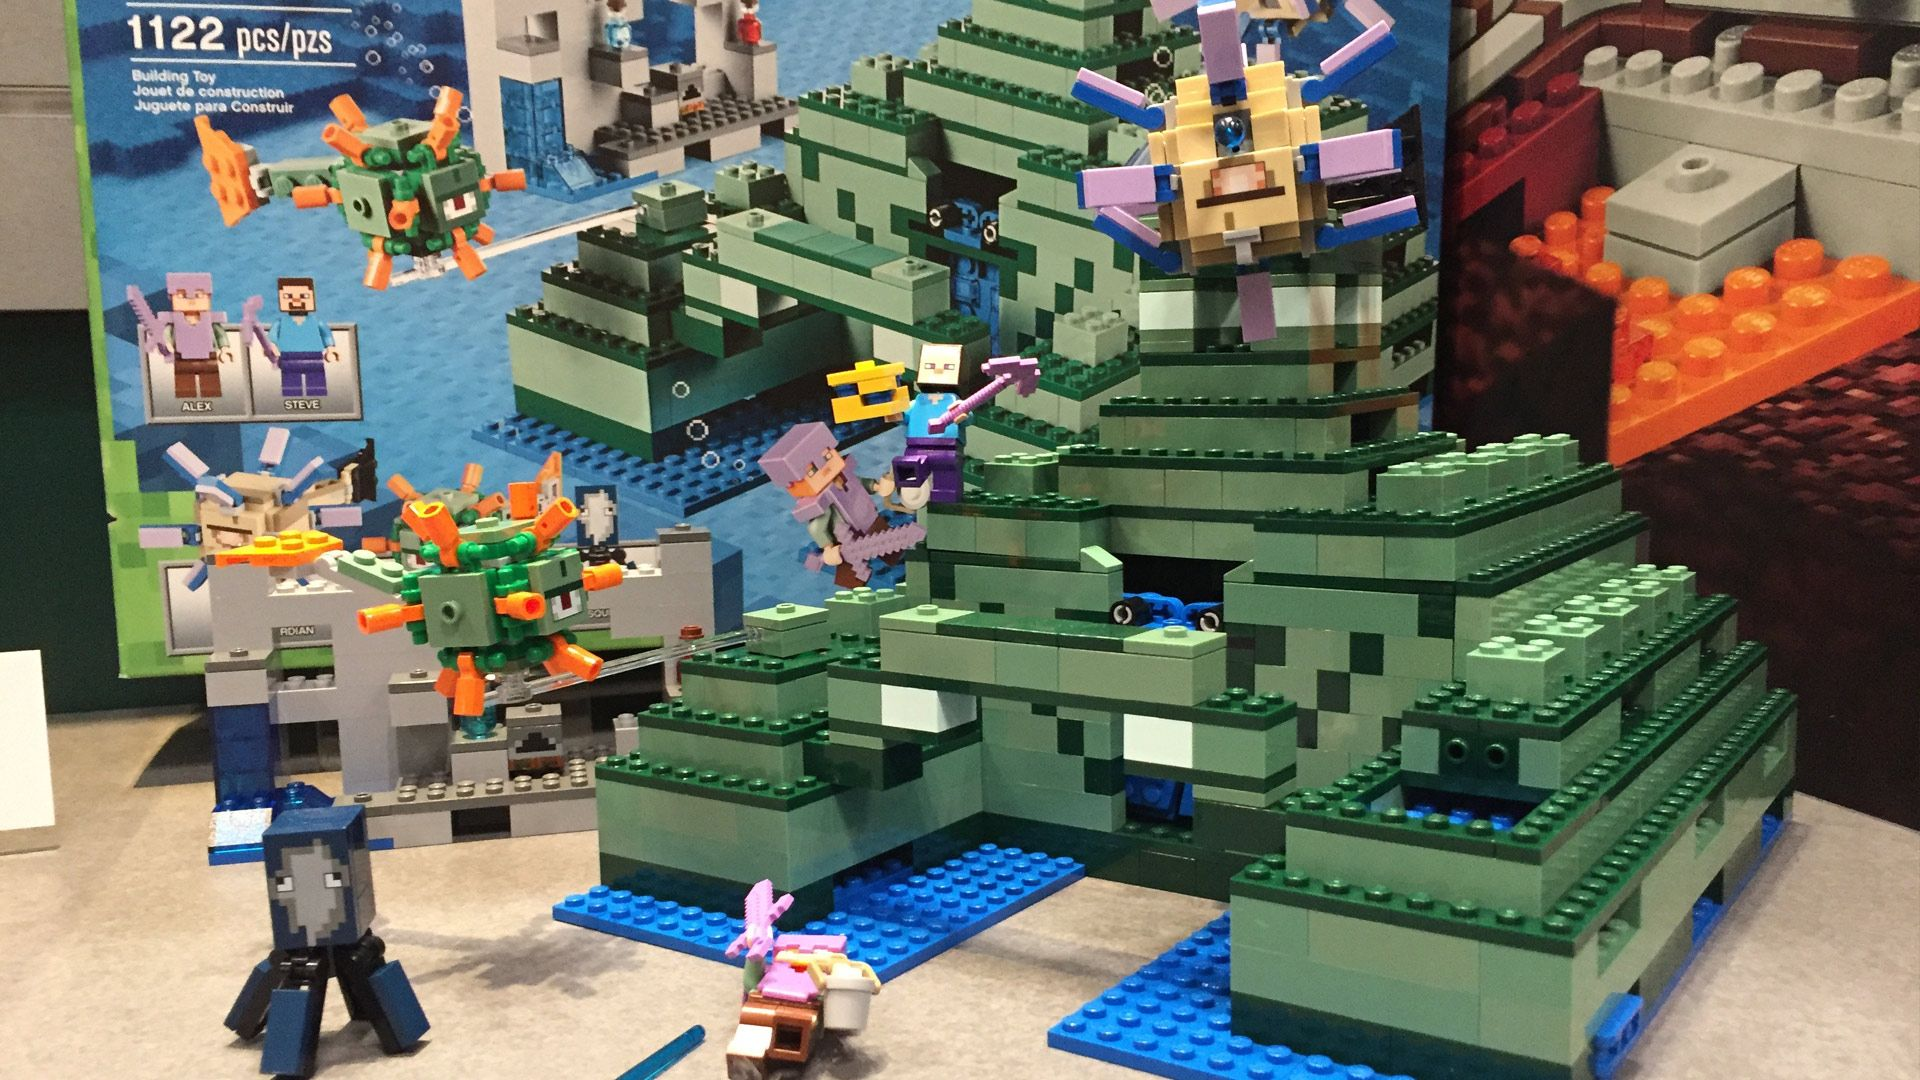 Lego Minecraft Sets 2017 At Toy Fair 2017 Colby S Pins